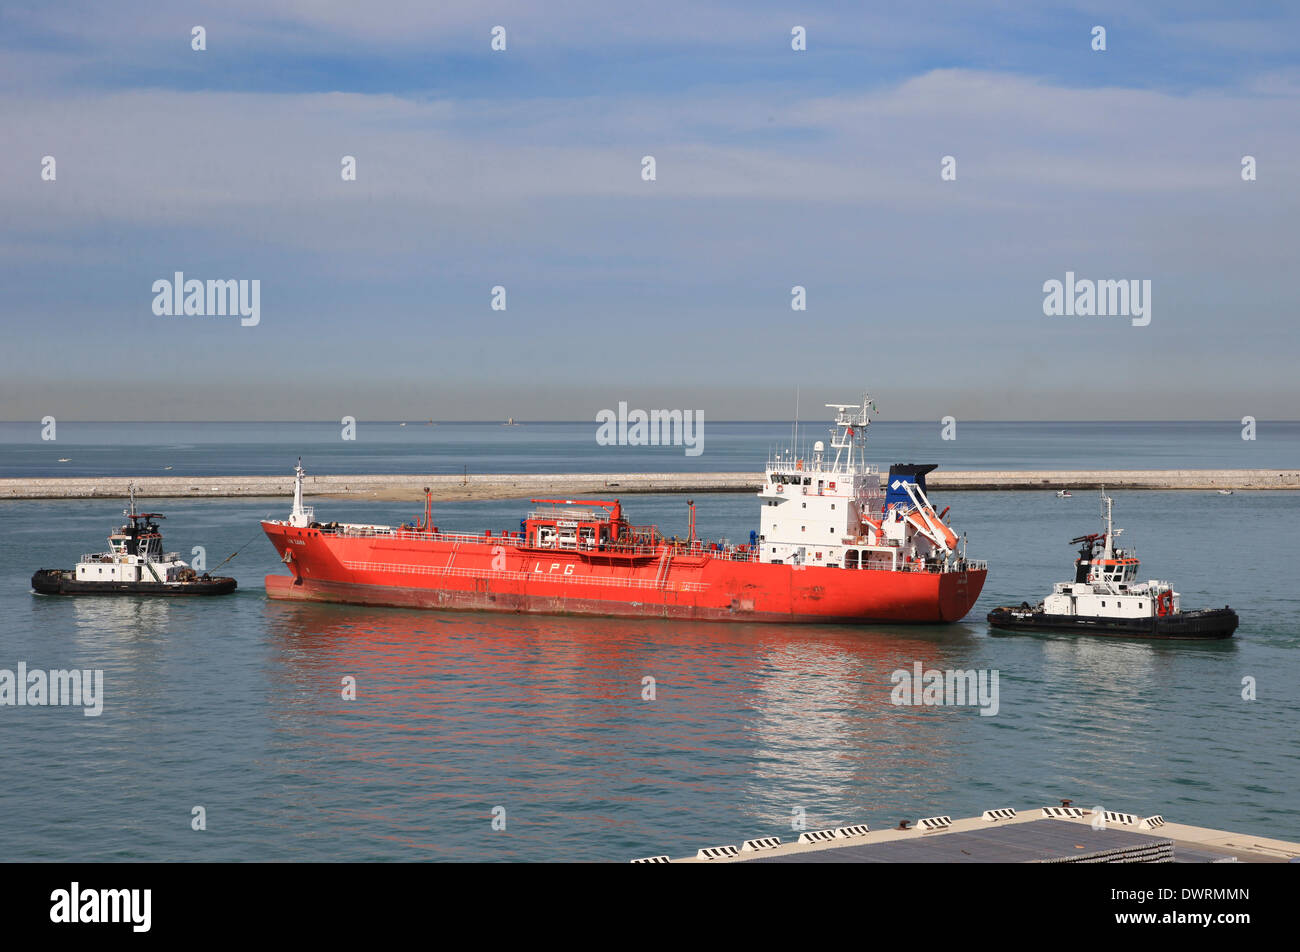 LPG tanker SYN ZAURA being manoeuvered in Livorno harbor by local tug boats - Stock Image